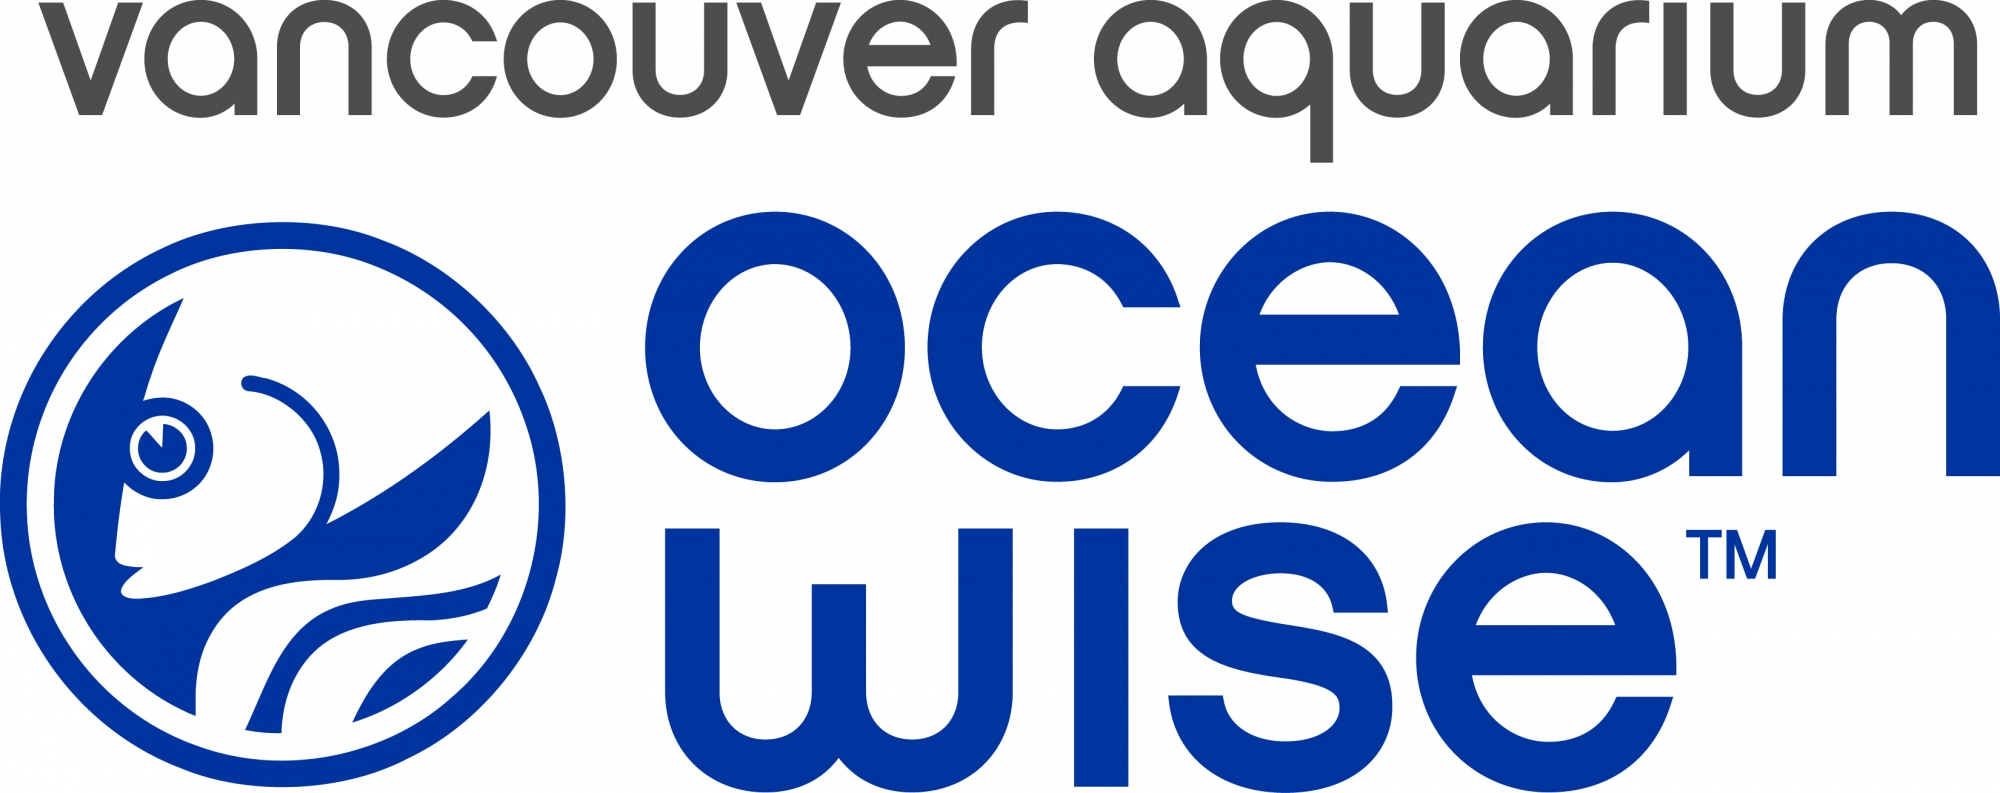 OW_program_logo_blue.jpg